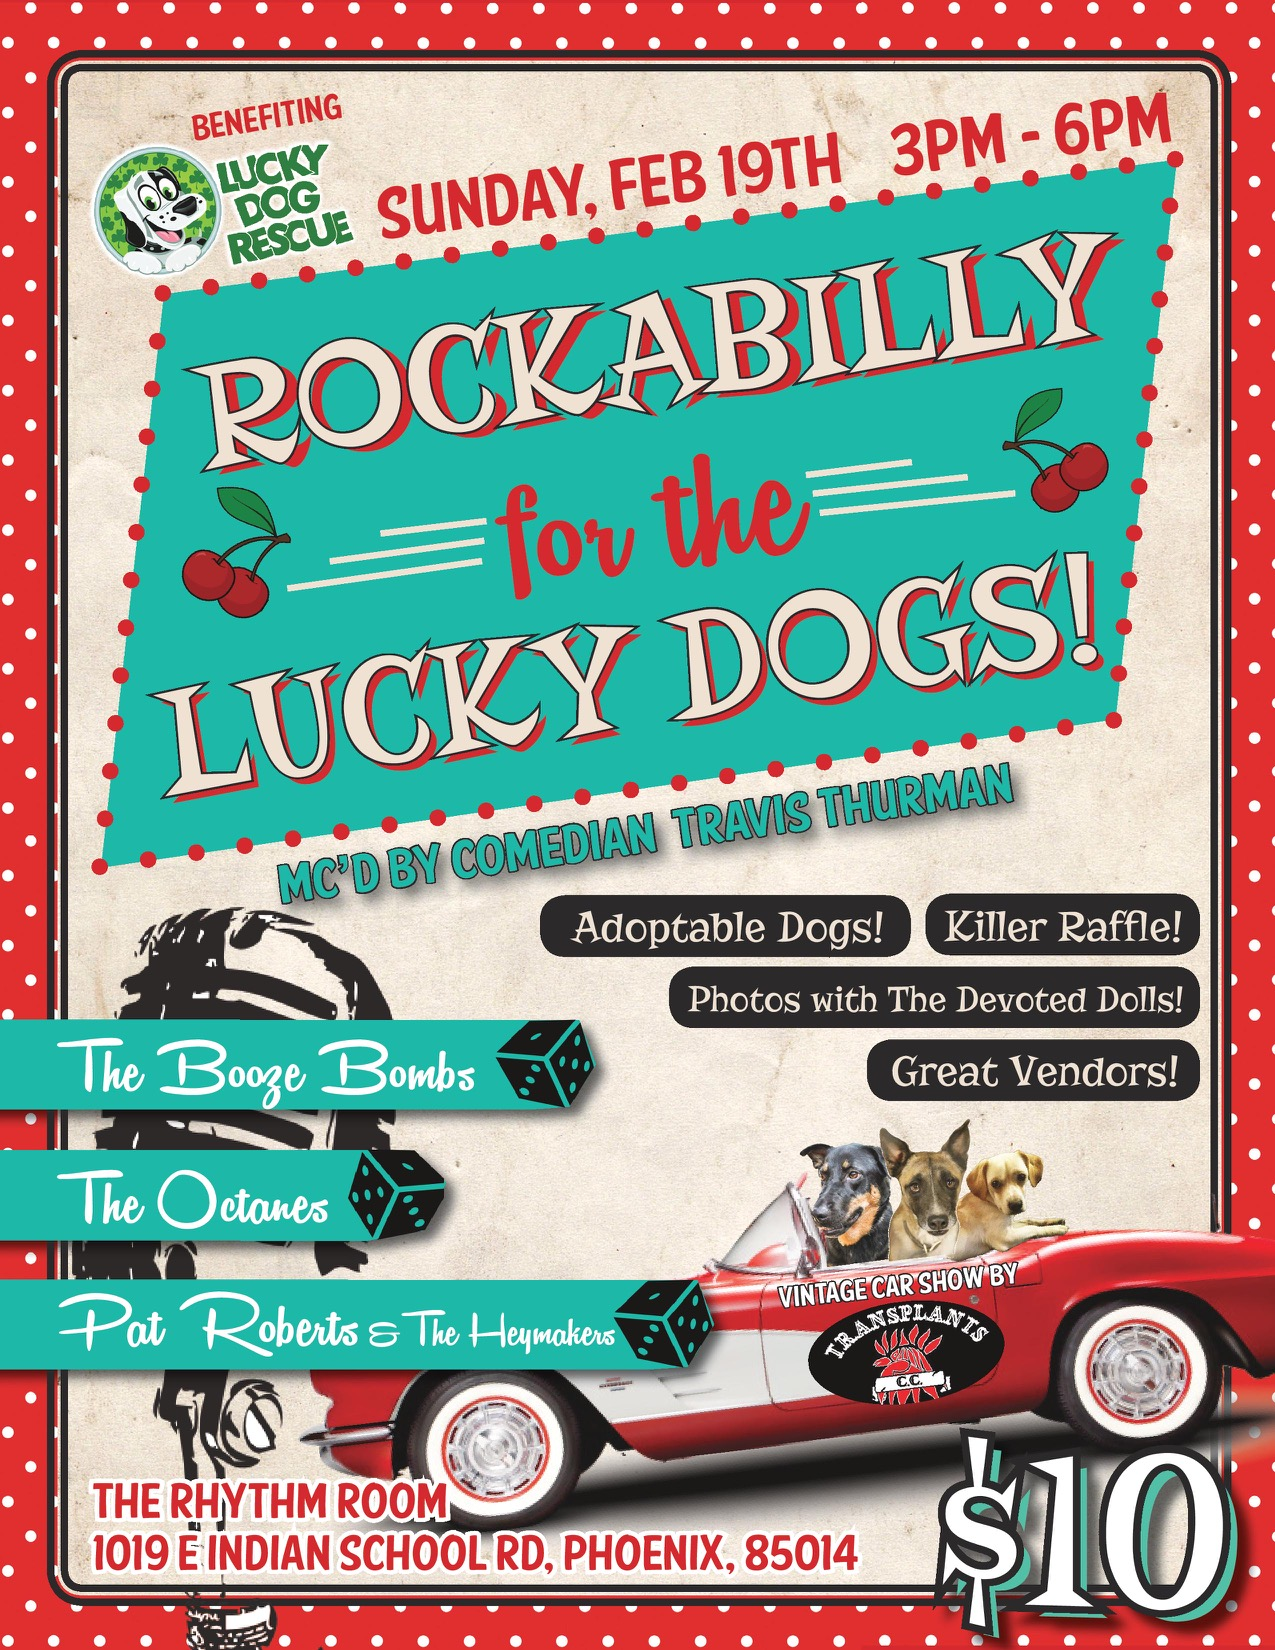 Lucky Dog Rescue - Rockabilly For The Lucky Dogs! @ The Rhythm Room | Phoenix | Arizona | United States